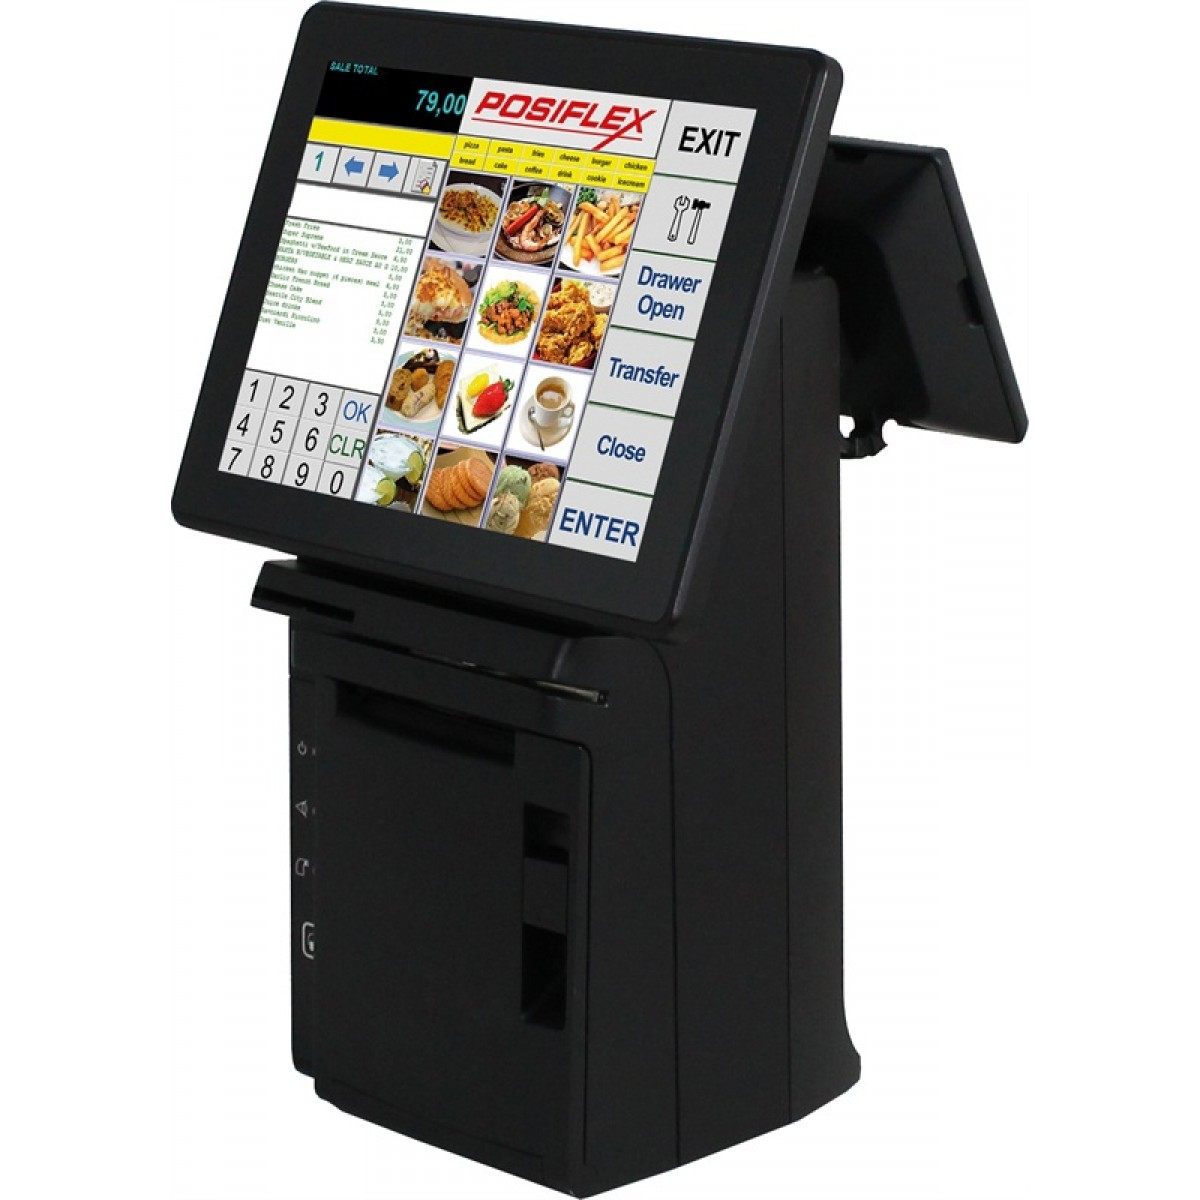 HS-2300 Series - Touch Screen Terminals